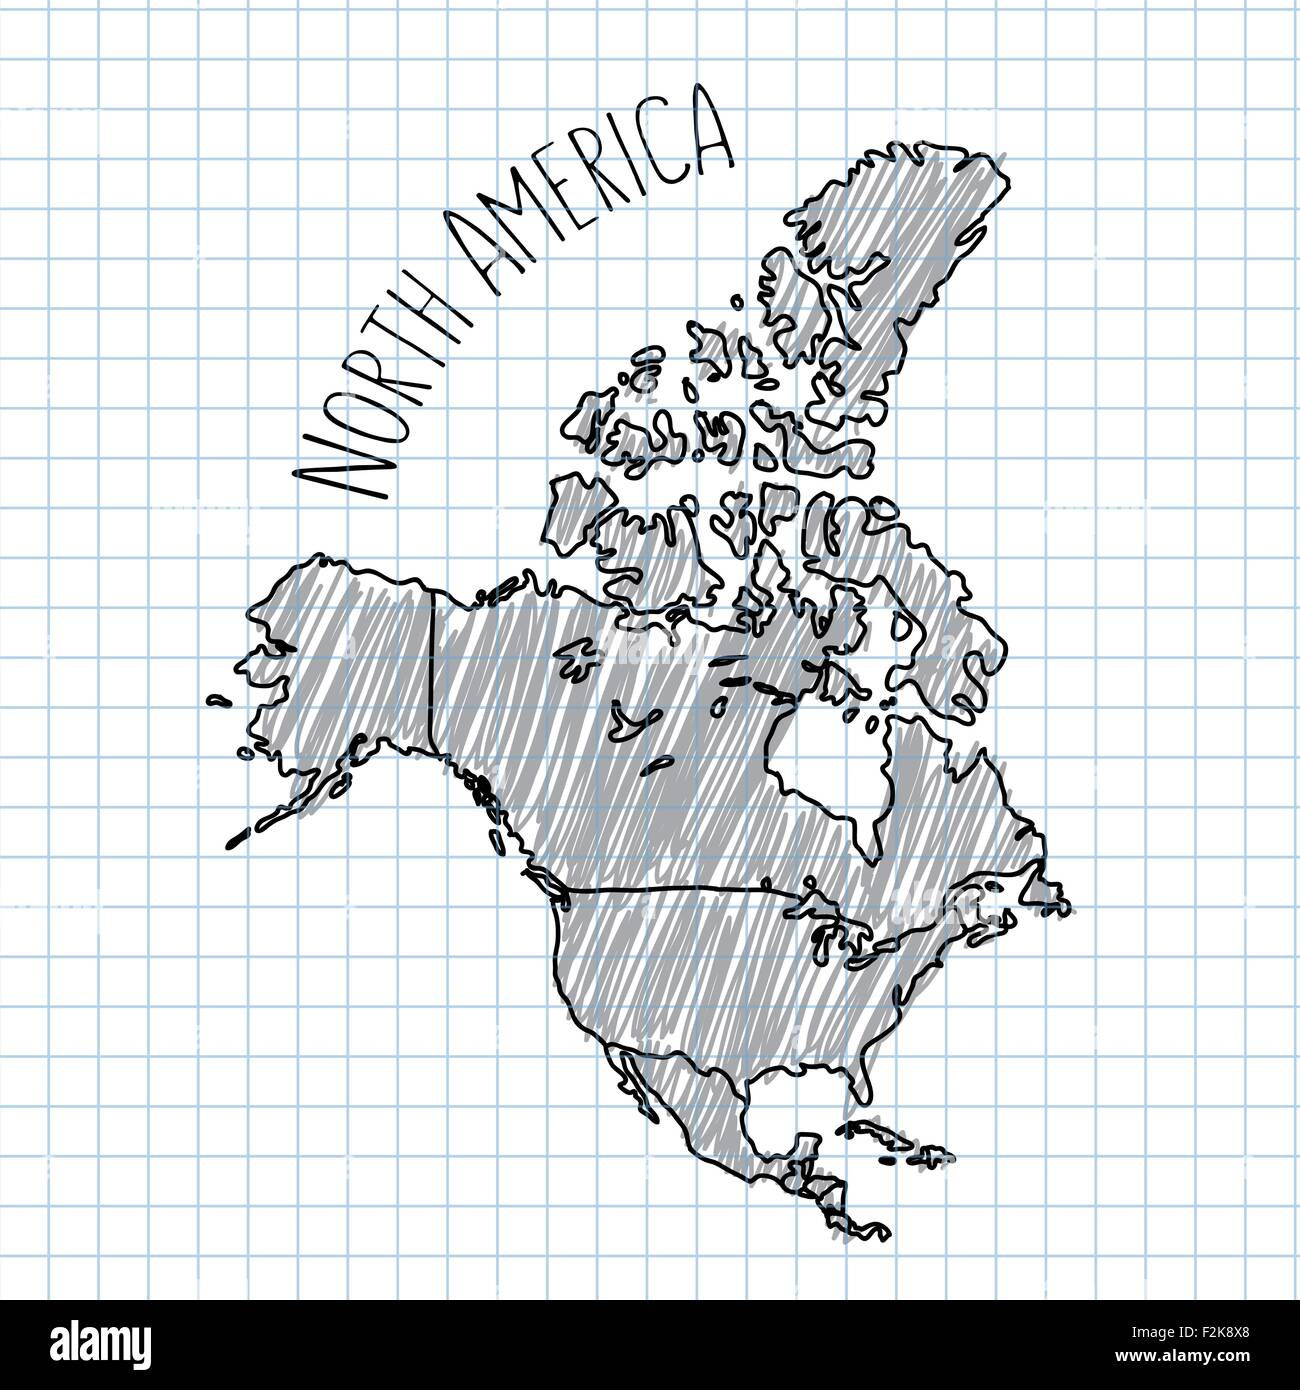 Pencil Hand Drawn North America Map Vector On Paper Illustration - North america map drawing